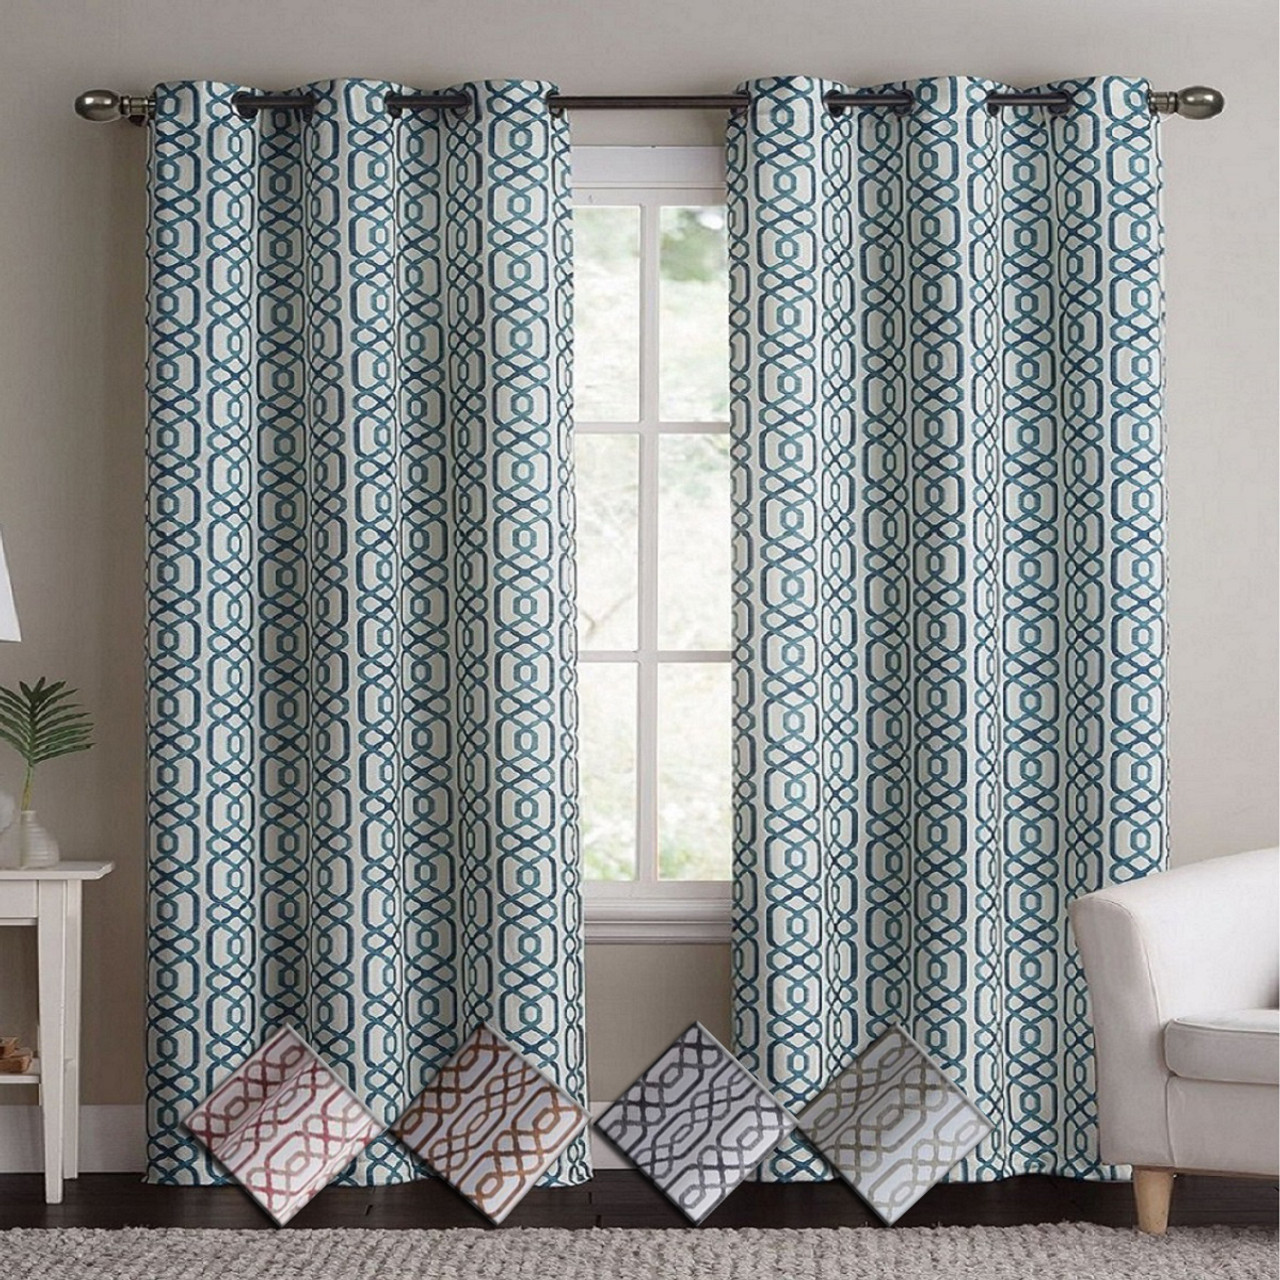 Alexander Blackout Weave Window Curtain Panels With Grommets (Pair) ...